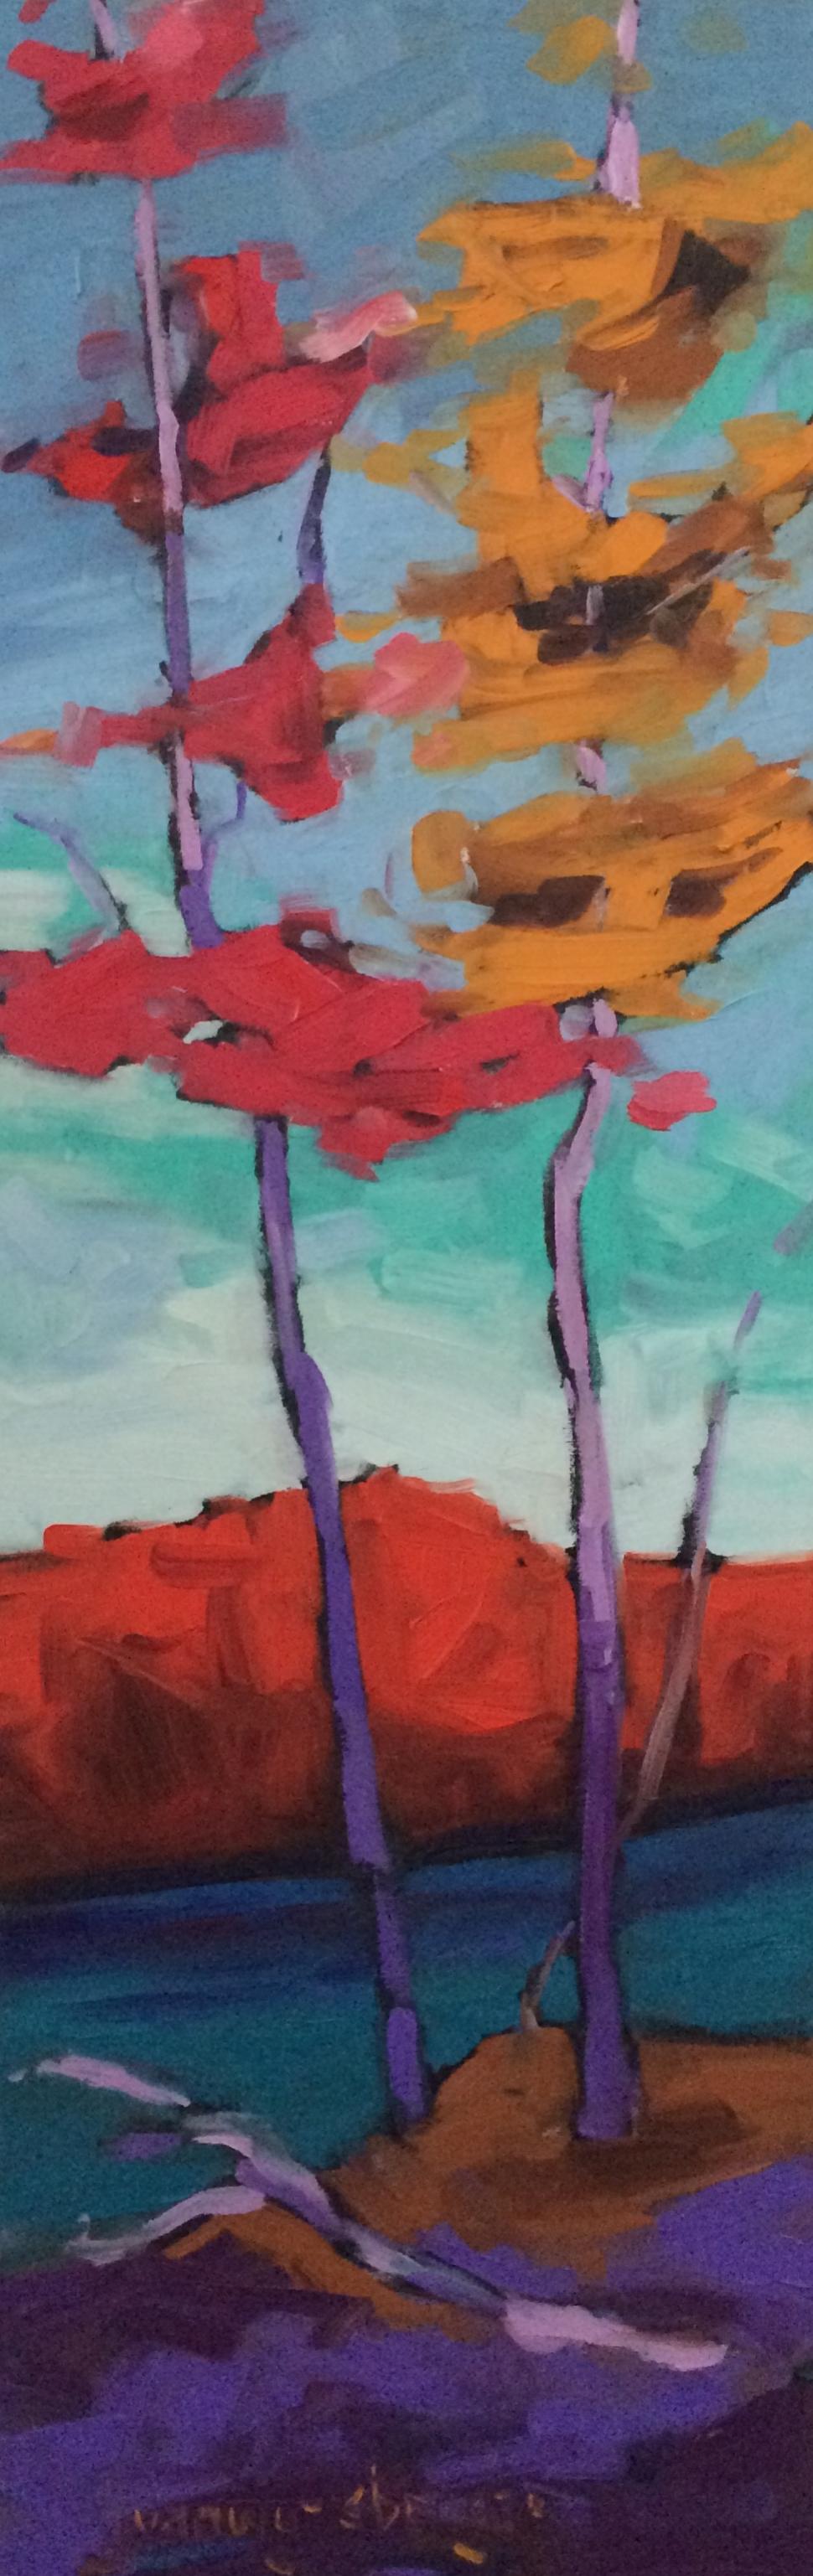 lakes of the rideau 1 - 36X12